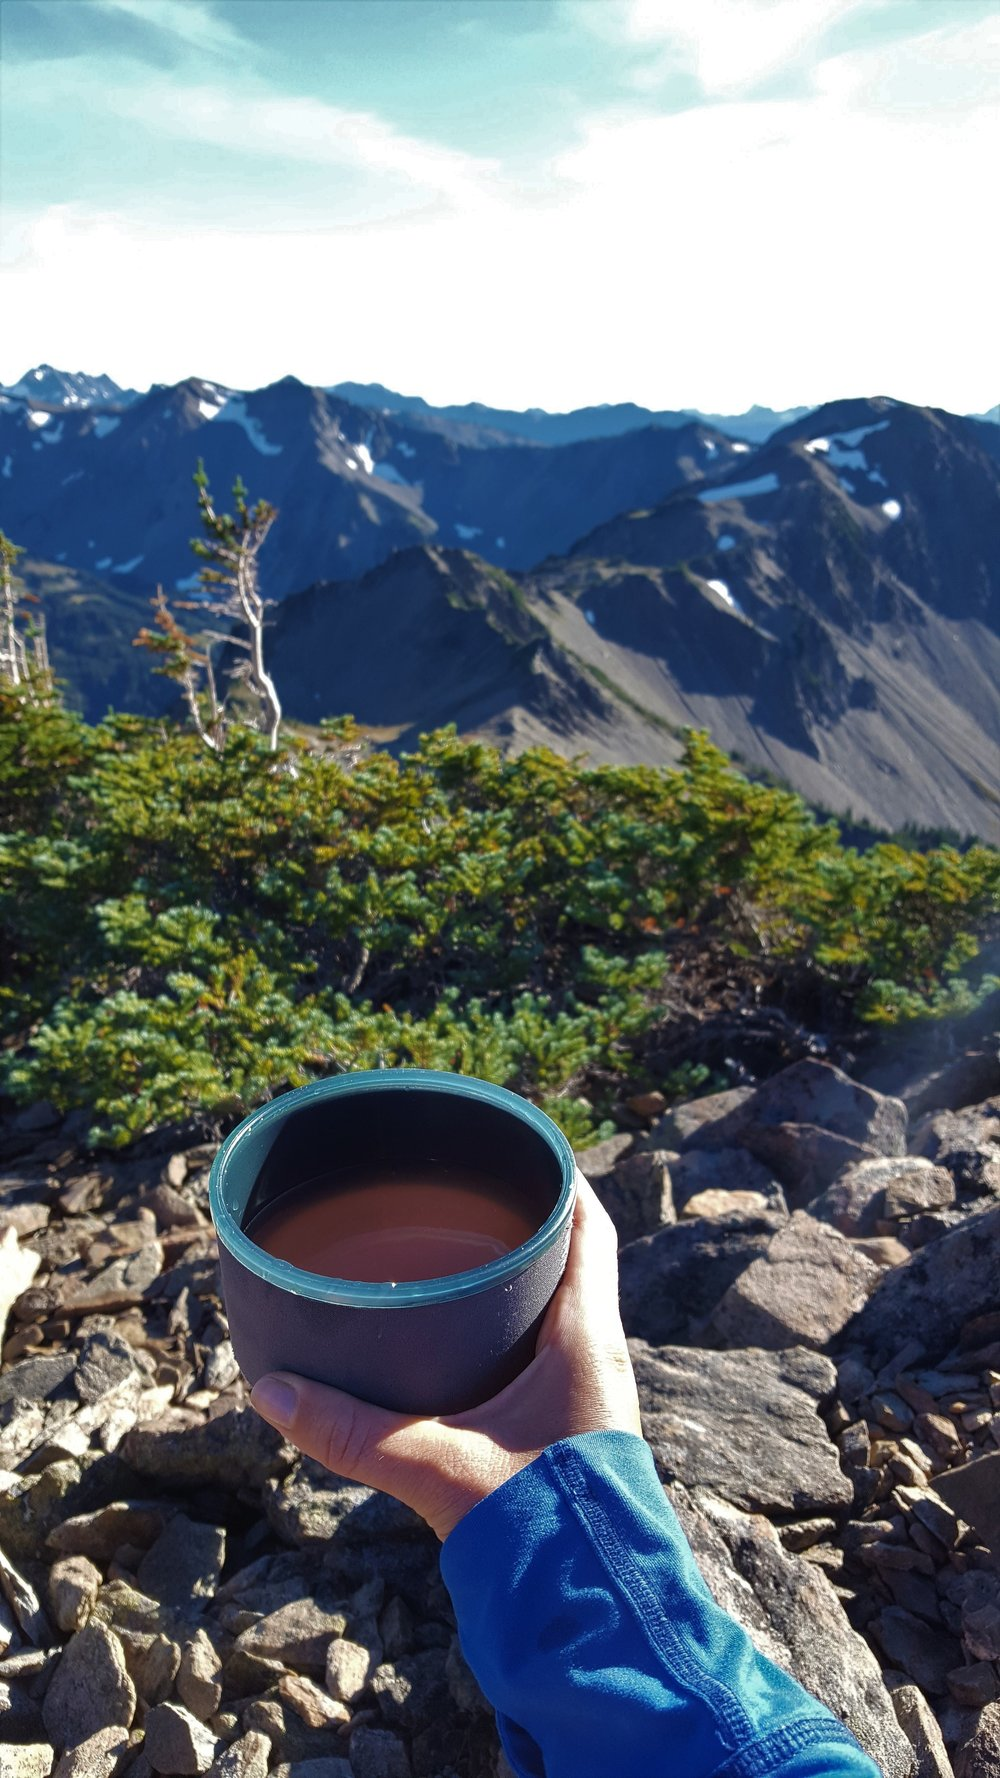 Backcountry cocktails